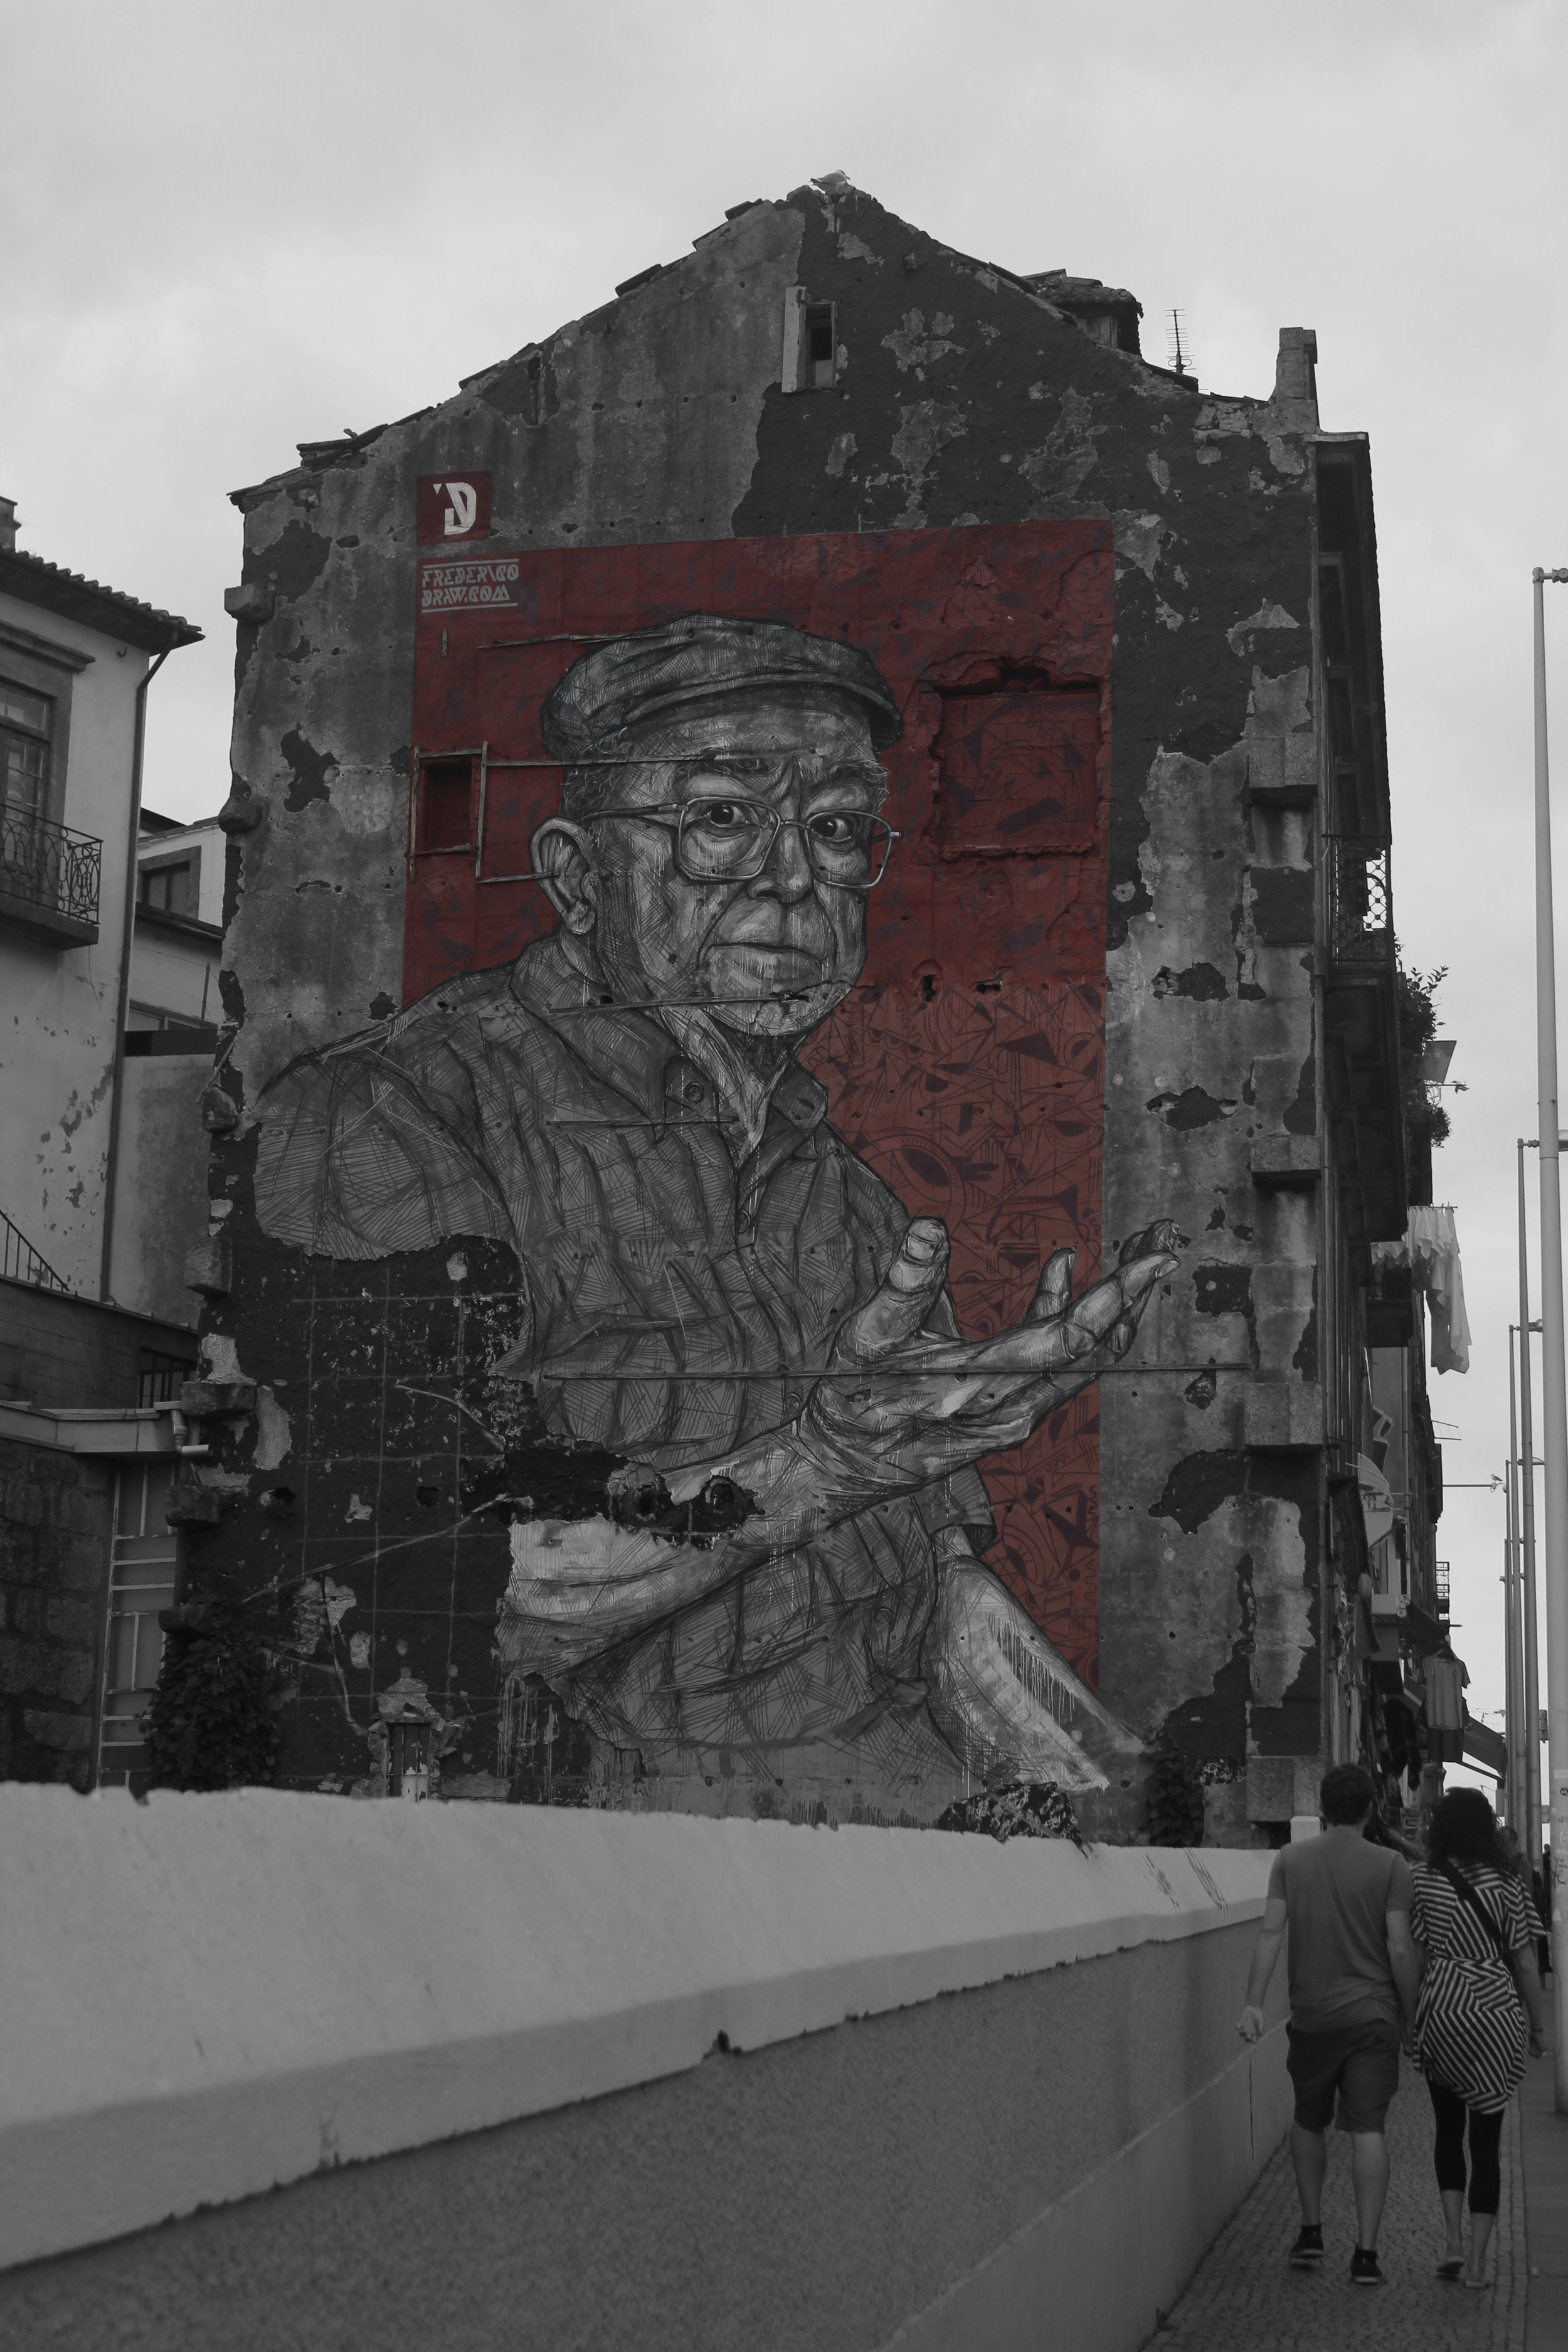 Wisdom in the city - Porto, Portugal (Captured by Emily Sproule)